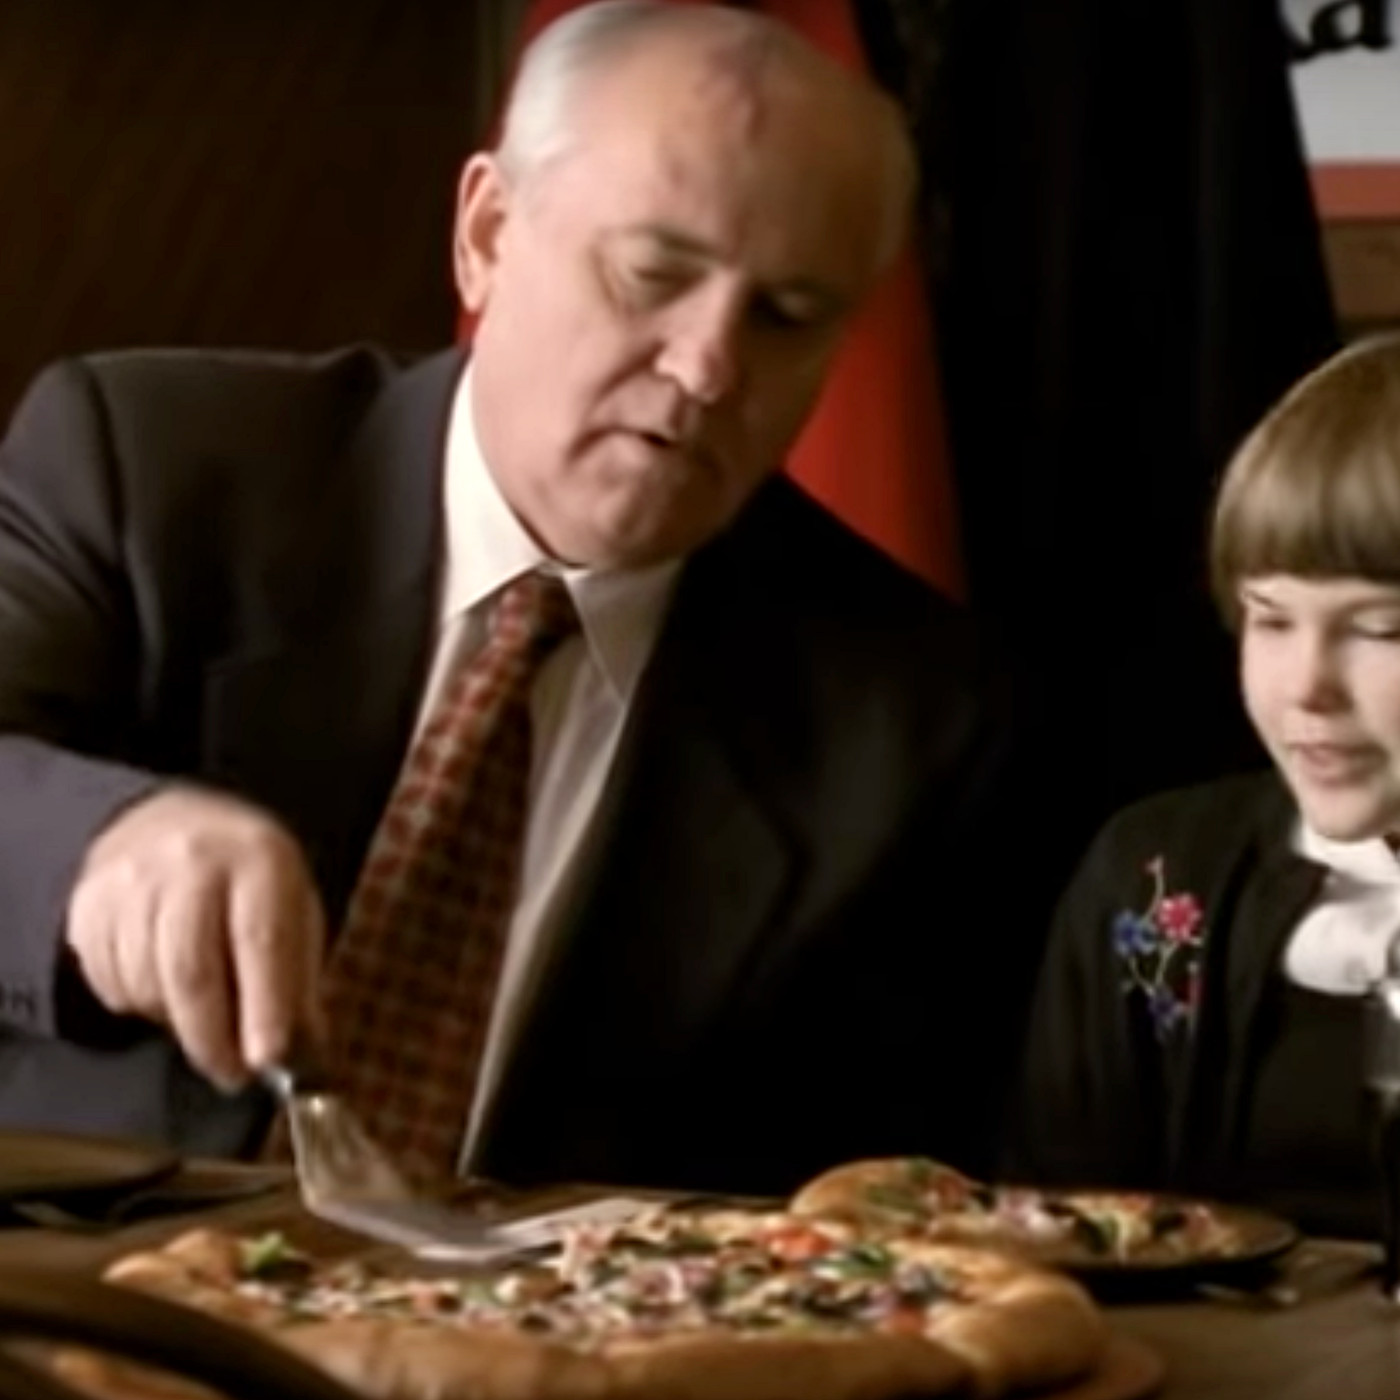 Former Soviet Leader Gorbachev Starred in a Pizza Hut Commercial in 1997 -  Eater